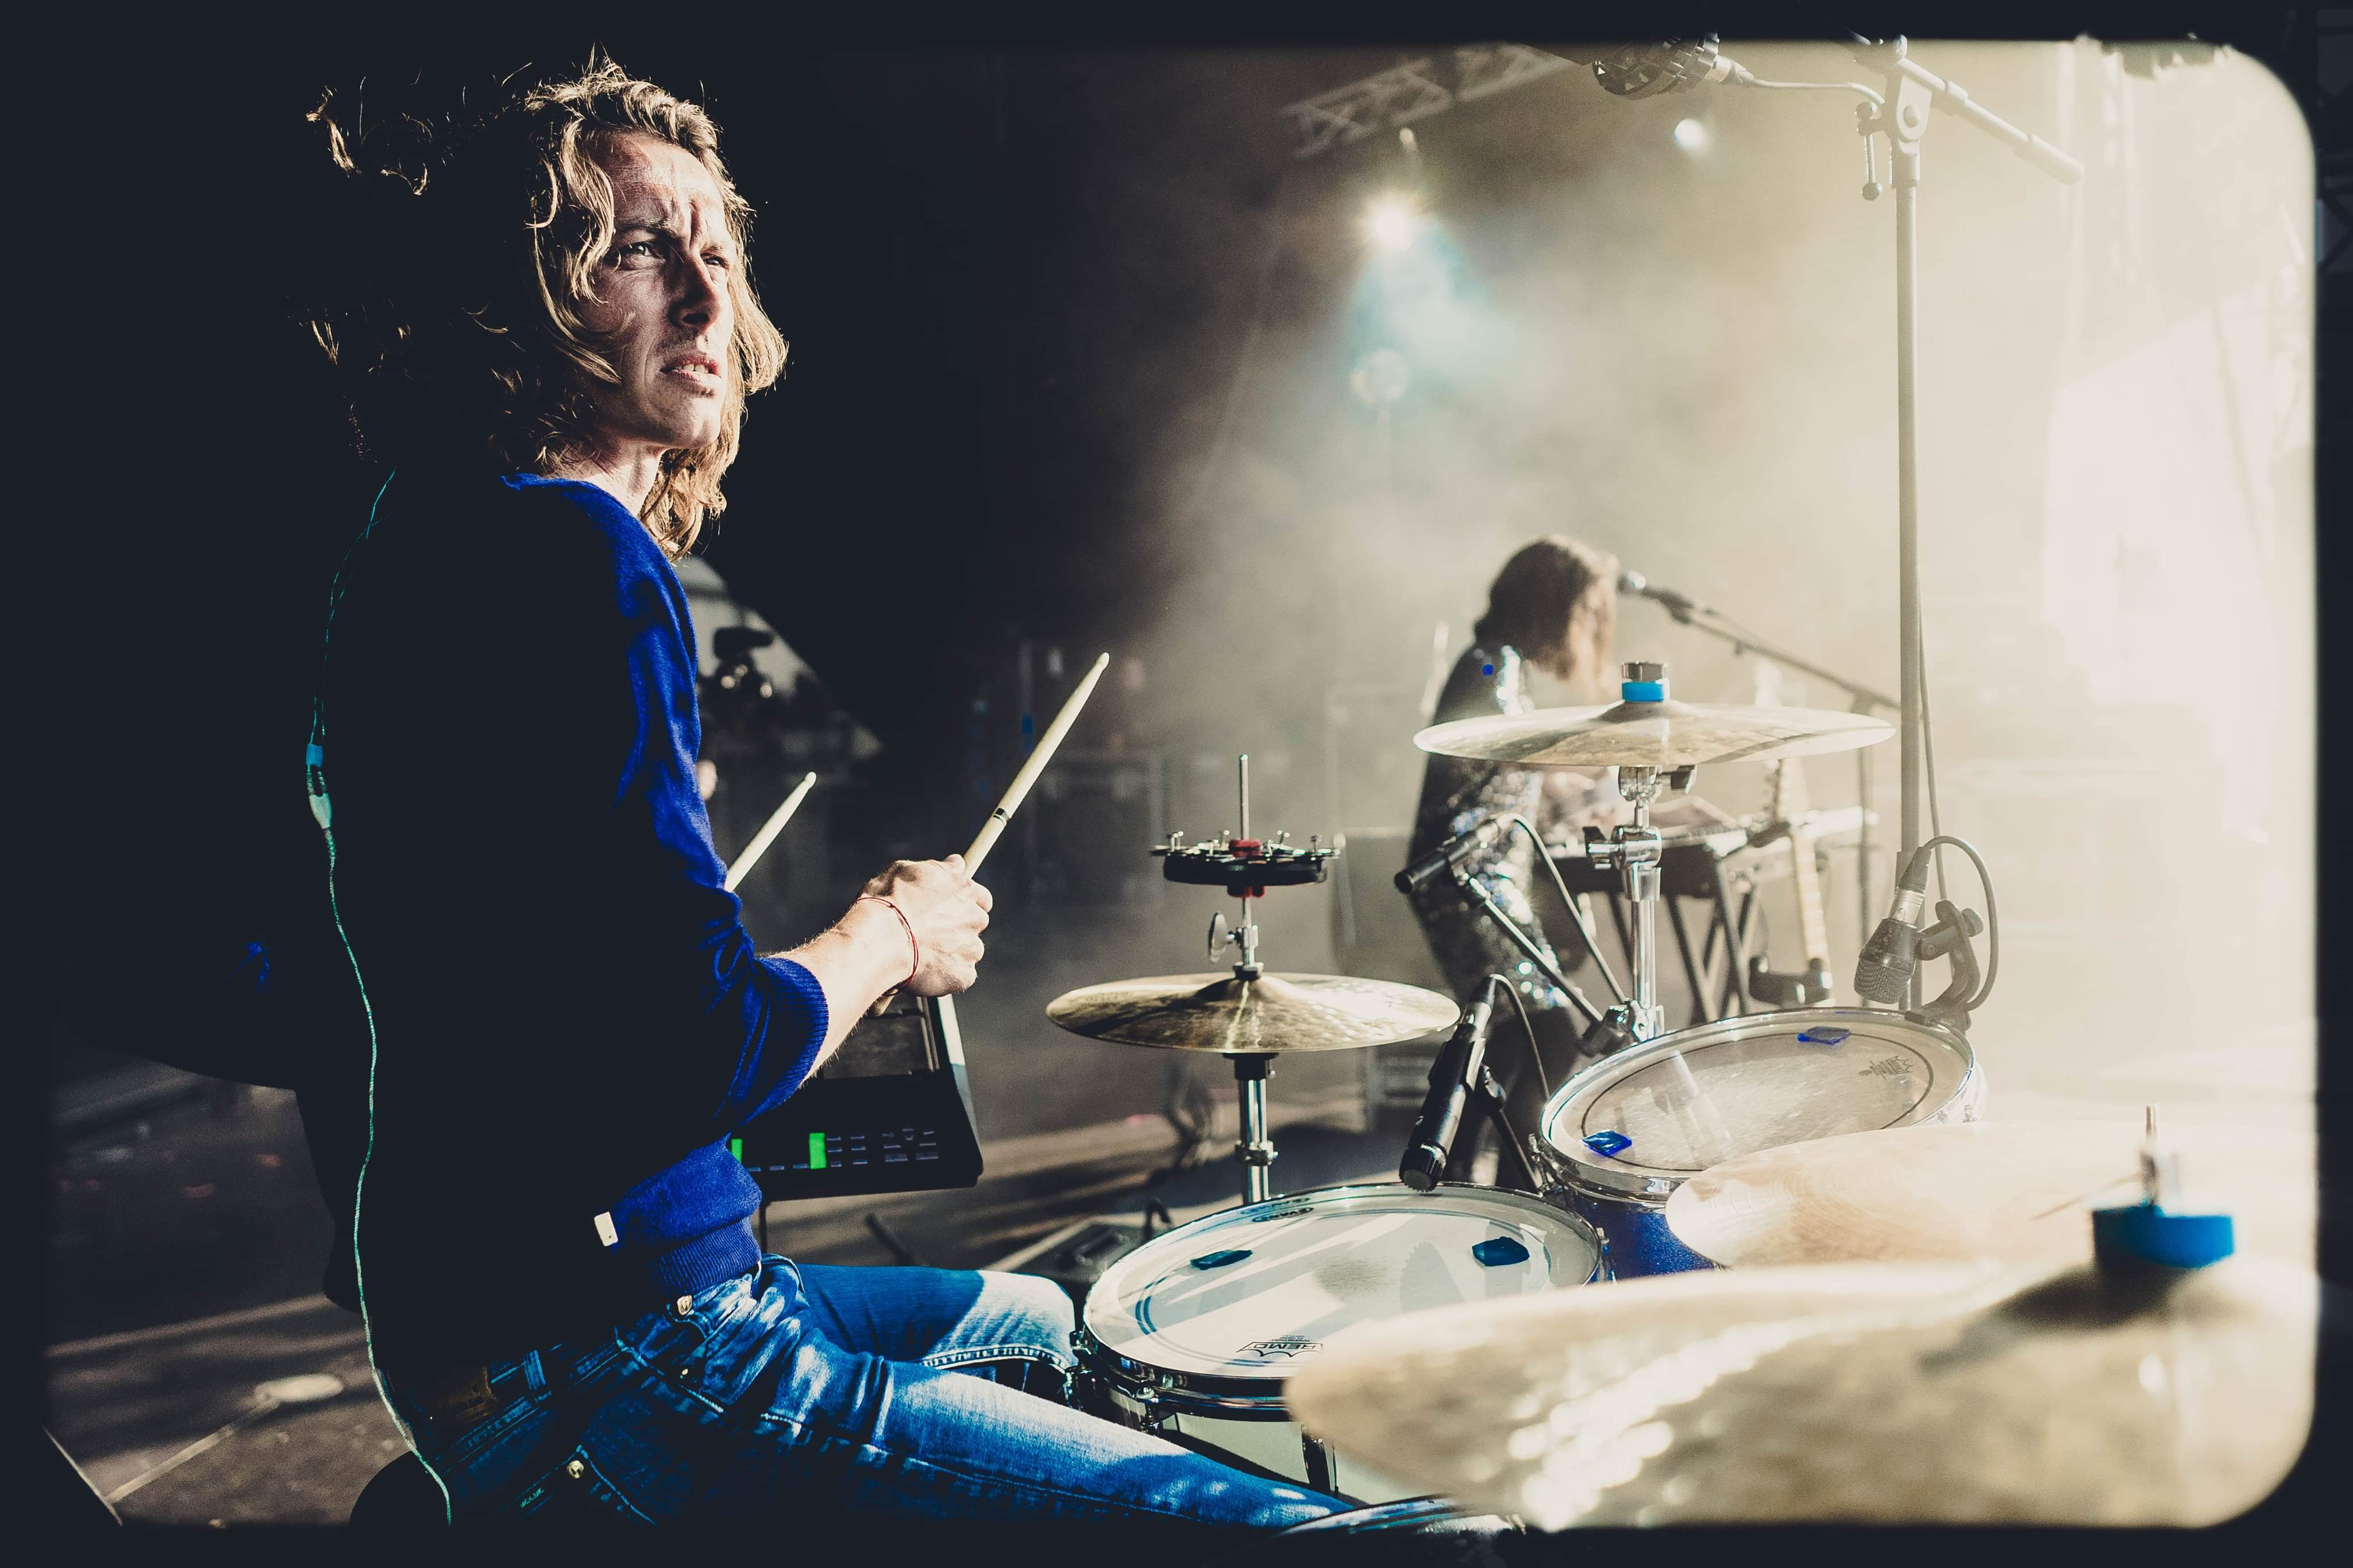 Encounter with Nicky Collaer, professional drummer